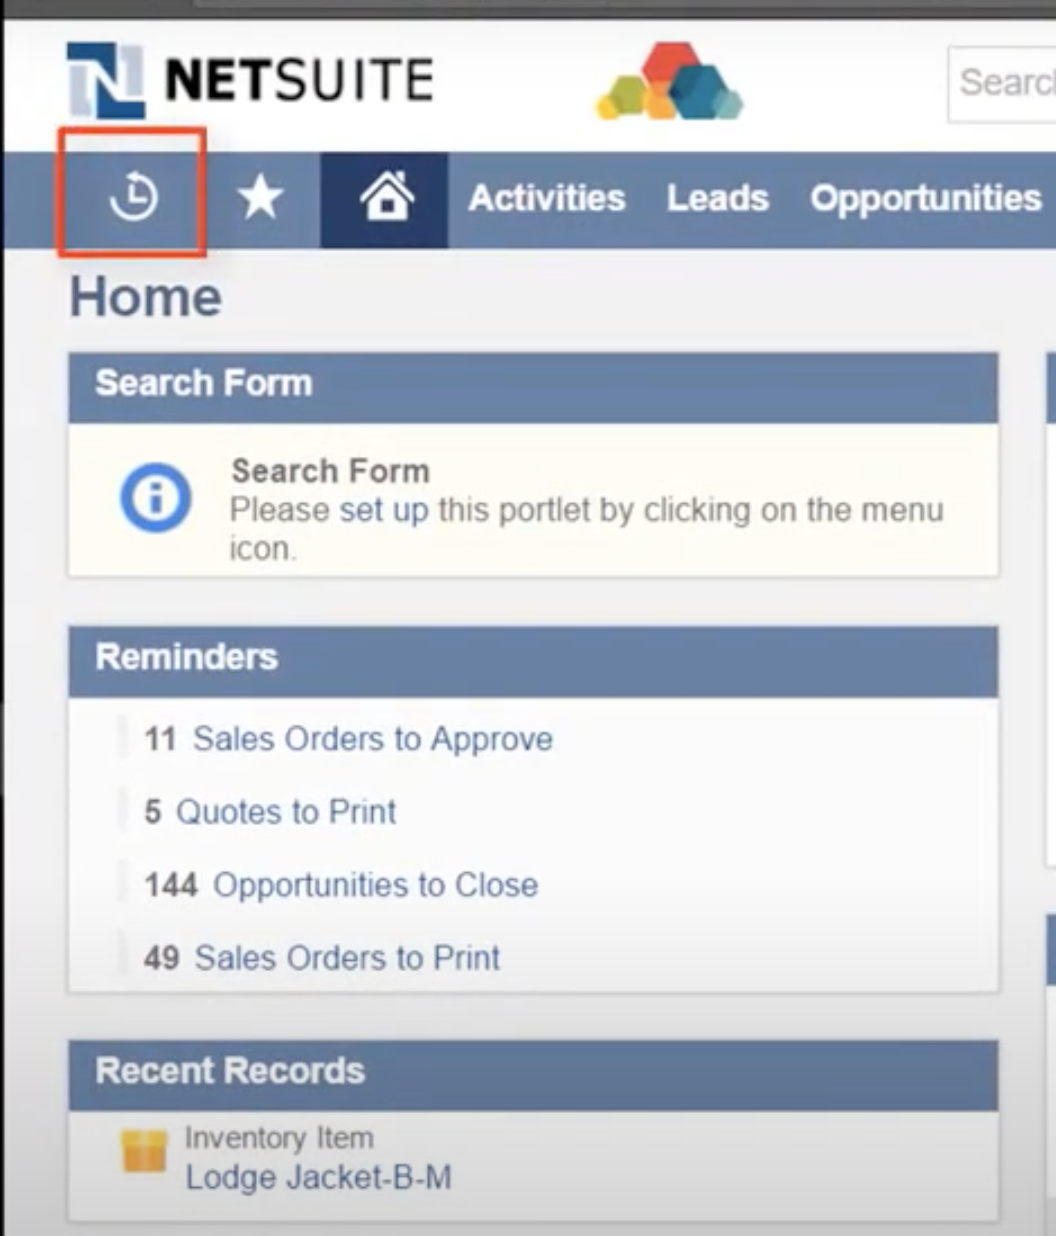 The recent records icon in NetSuite, located in the top left corner of each page, looks like a clock with an arrow around it.